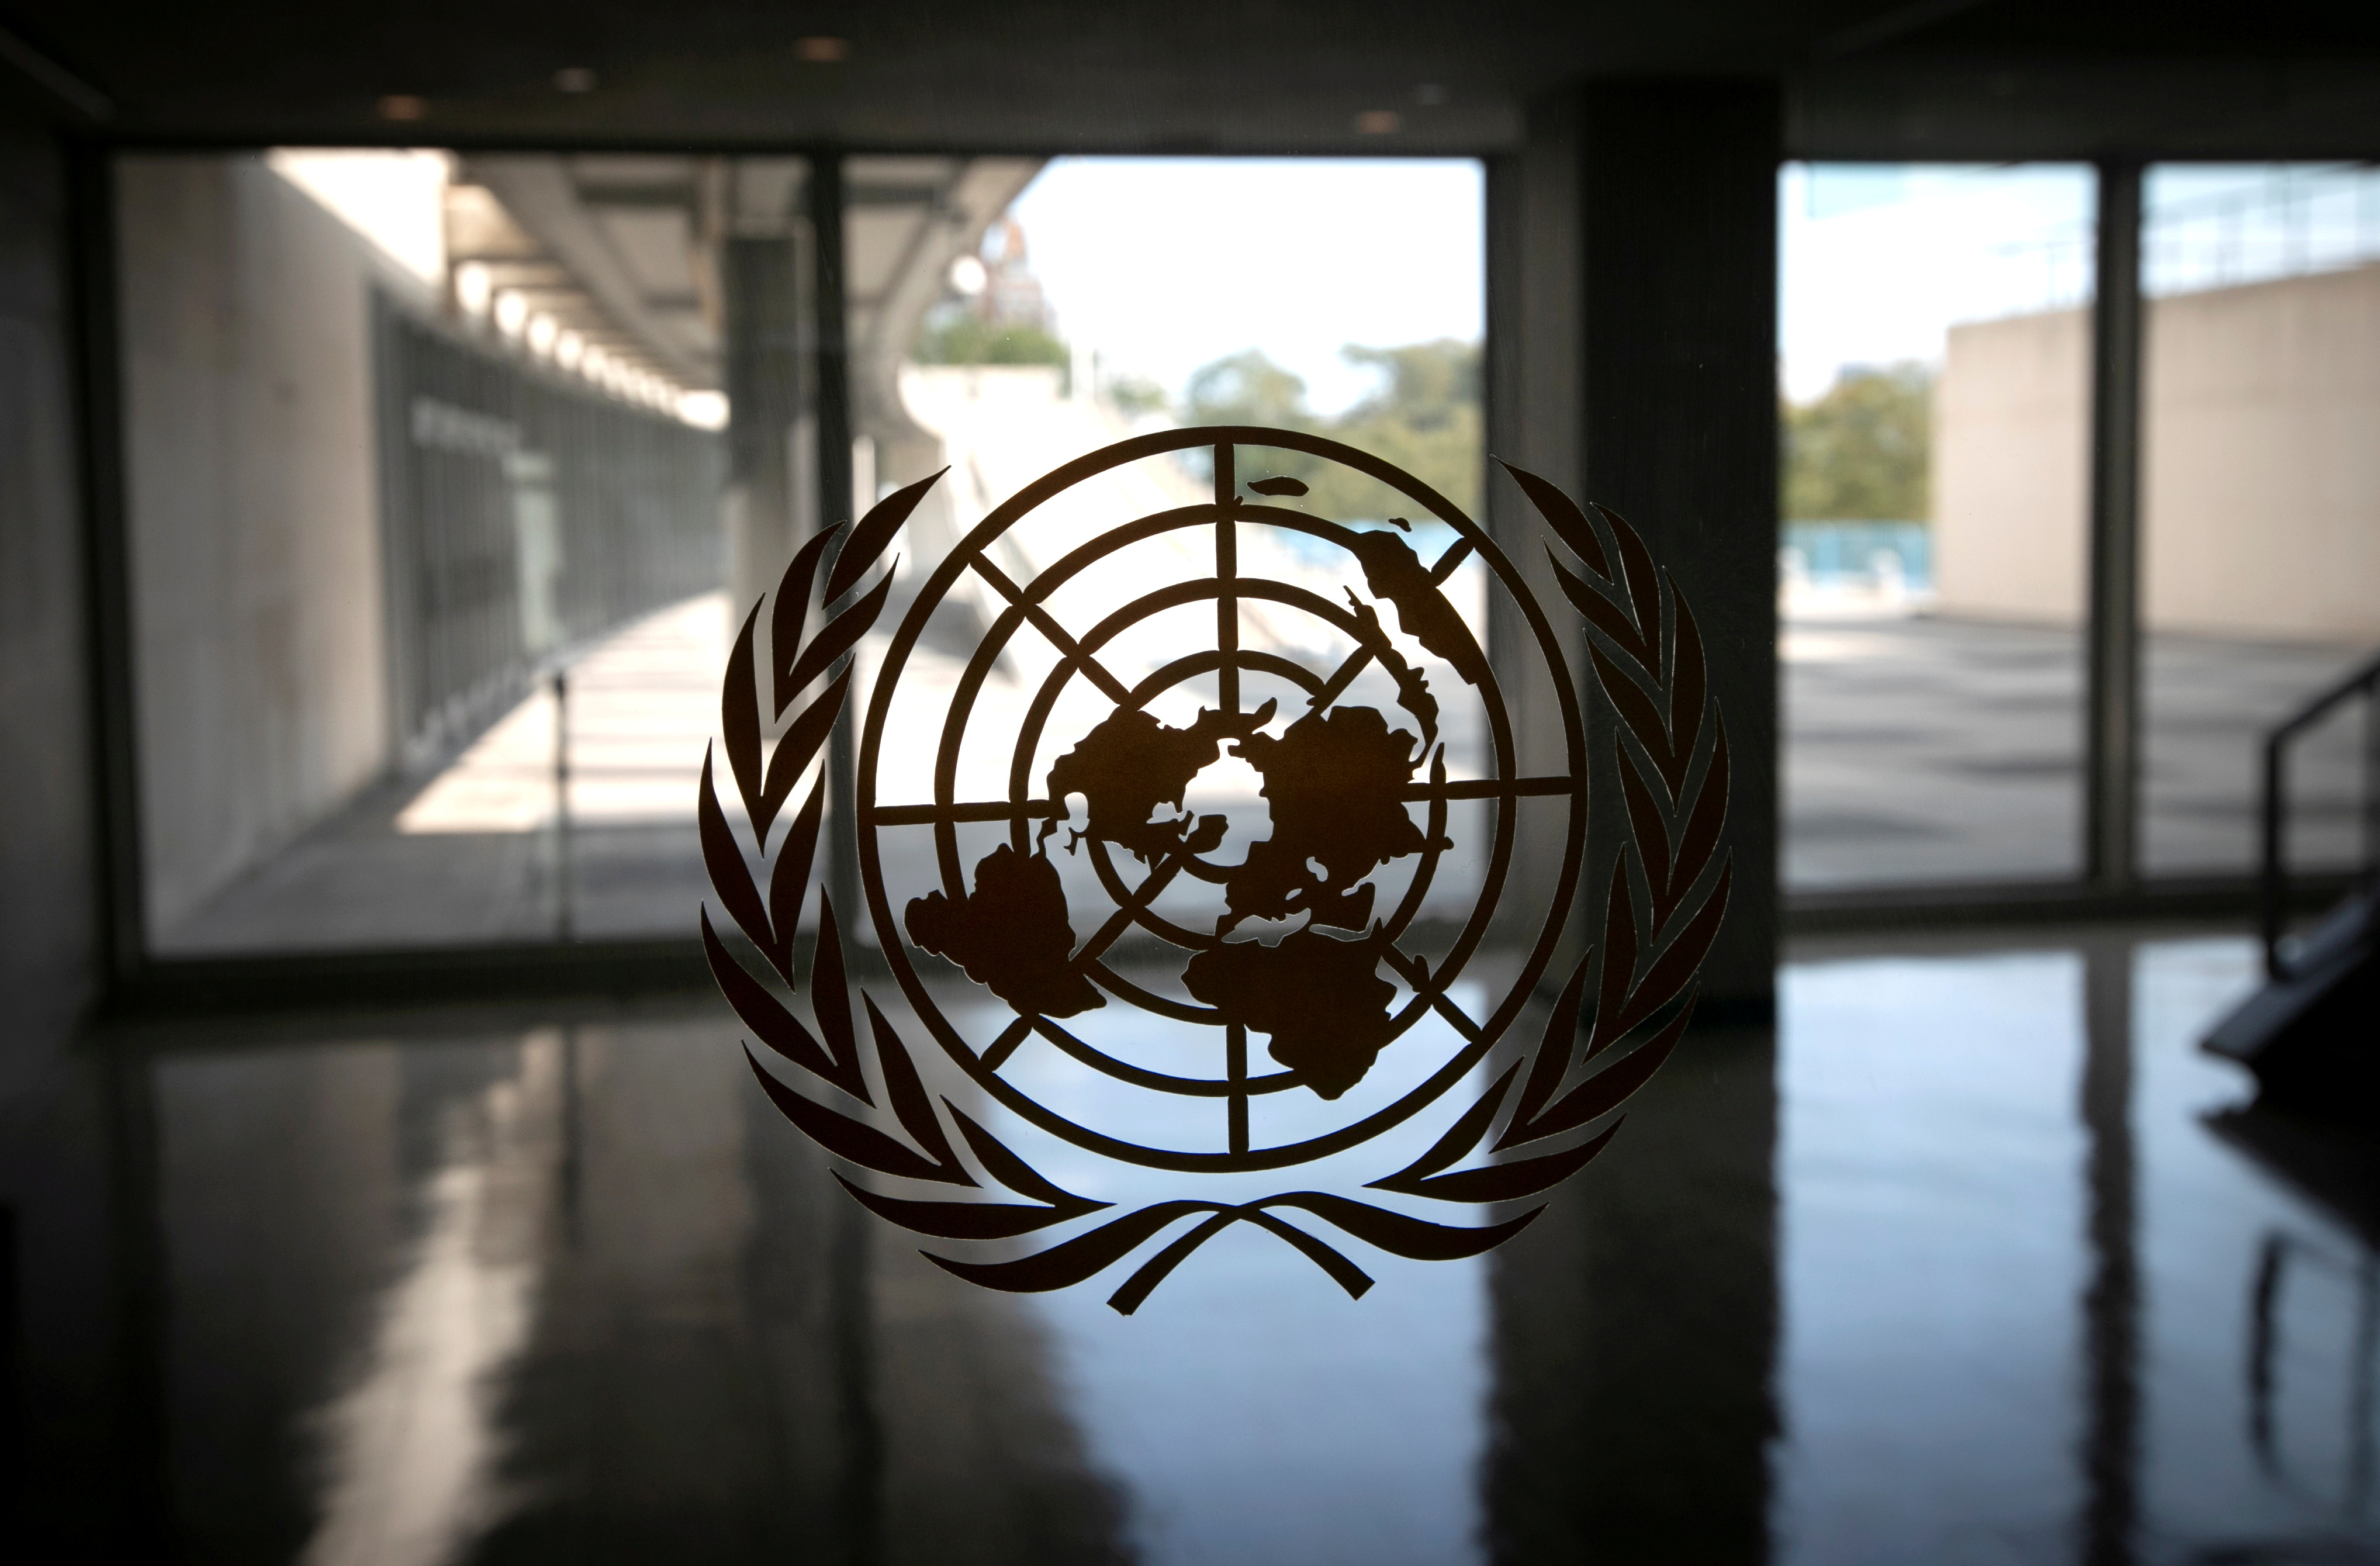 The United Nations logo is seen on a window in an empty hallway at United Nations headquarters during the 75th annual U.N. General Assembly high-level debate in New York, U.S., September 21, 2020. REUTERS/Mike Segar/File Photo